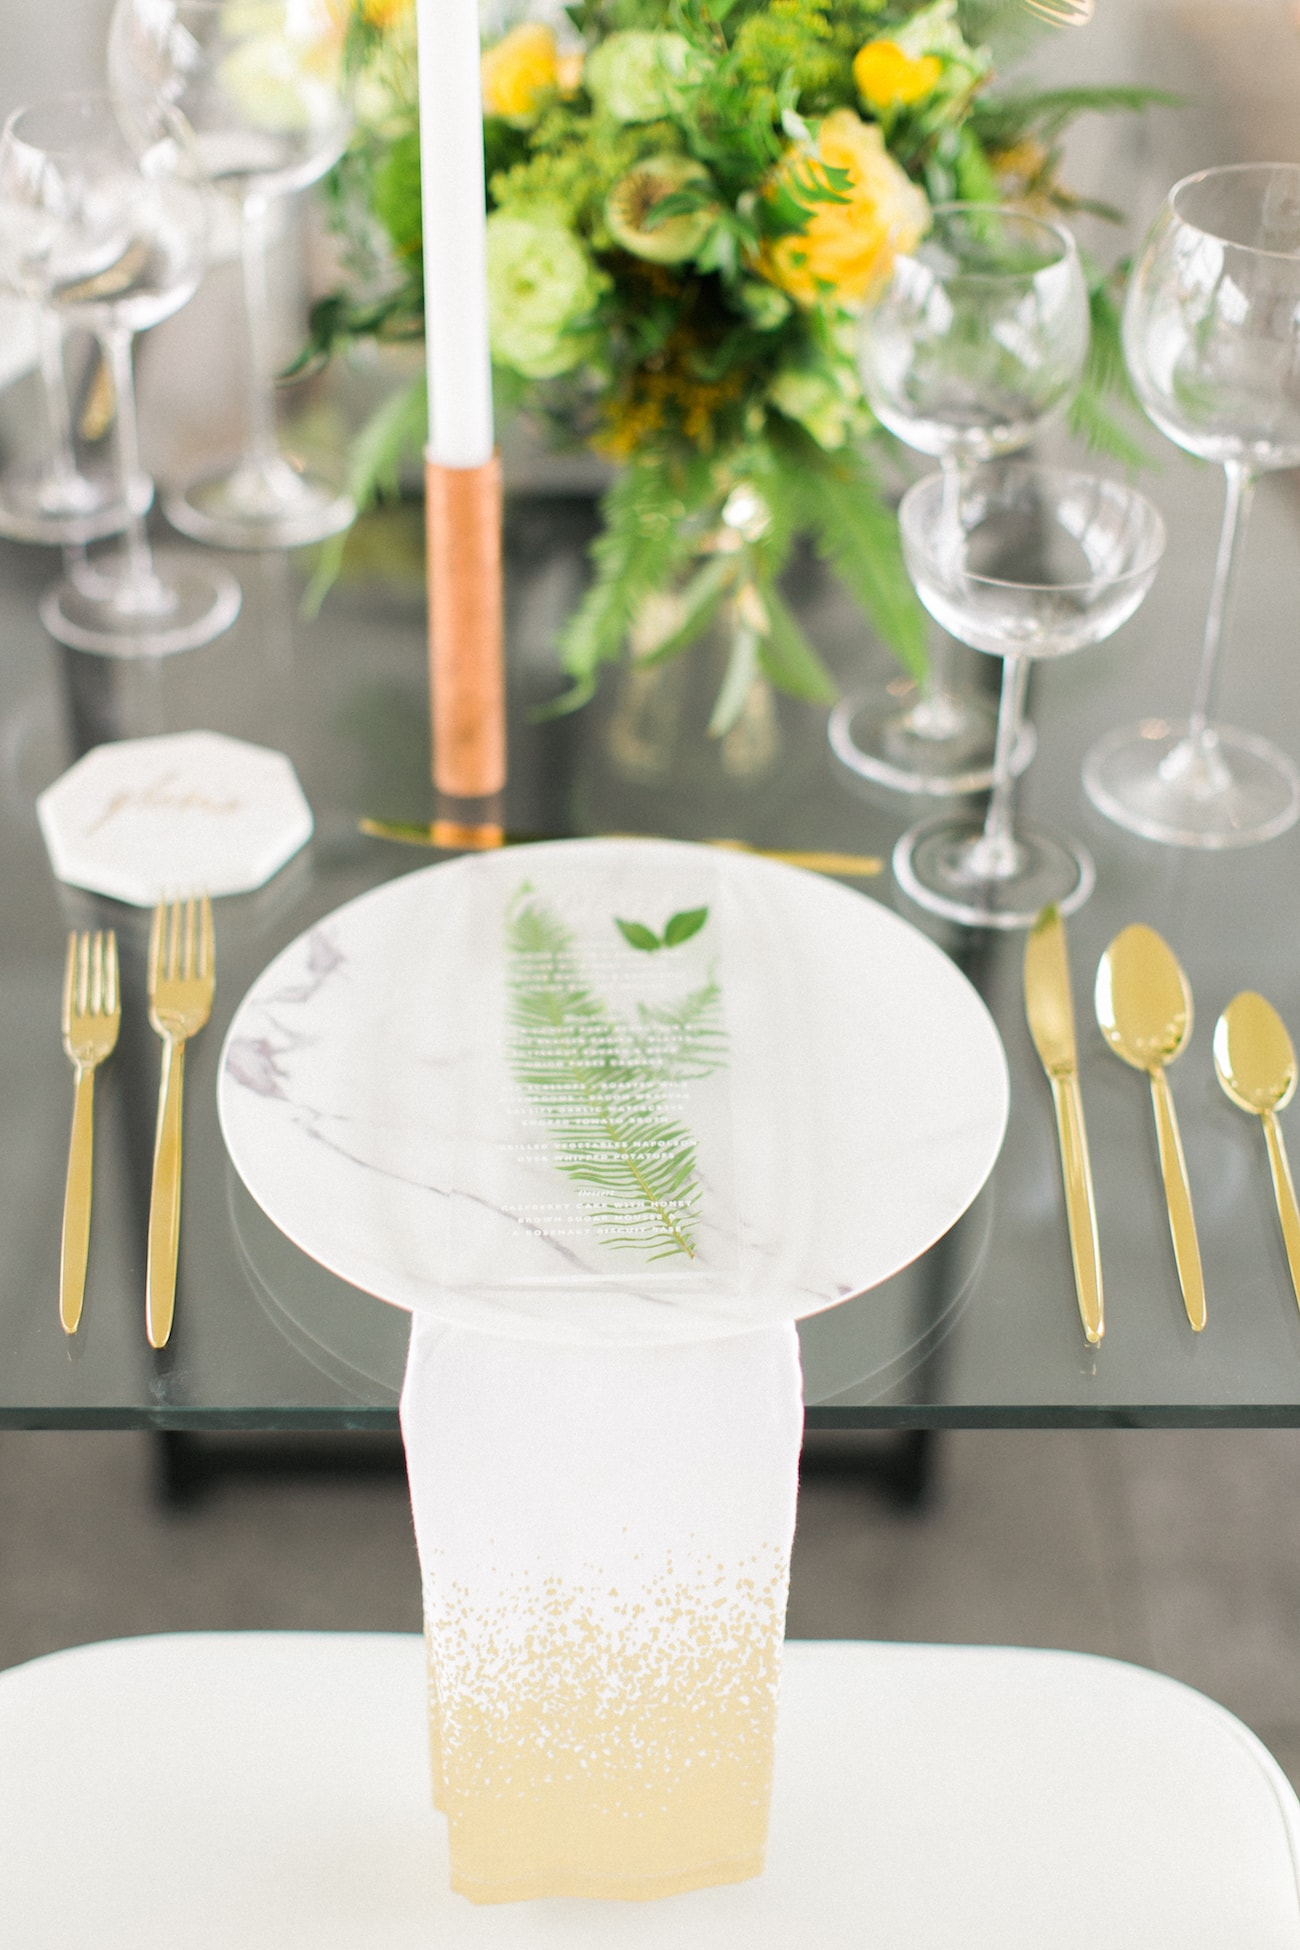 Lucite Menu with Fern | Credit: Ruth Eileen Photography